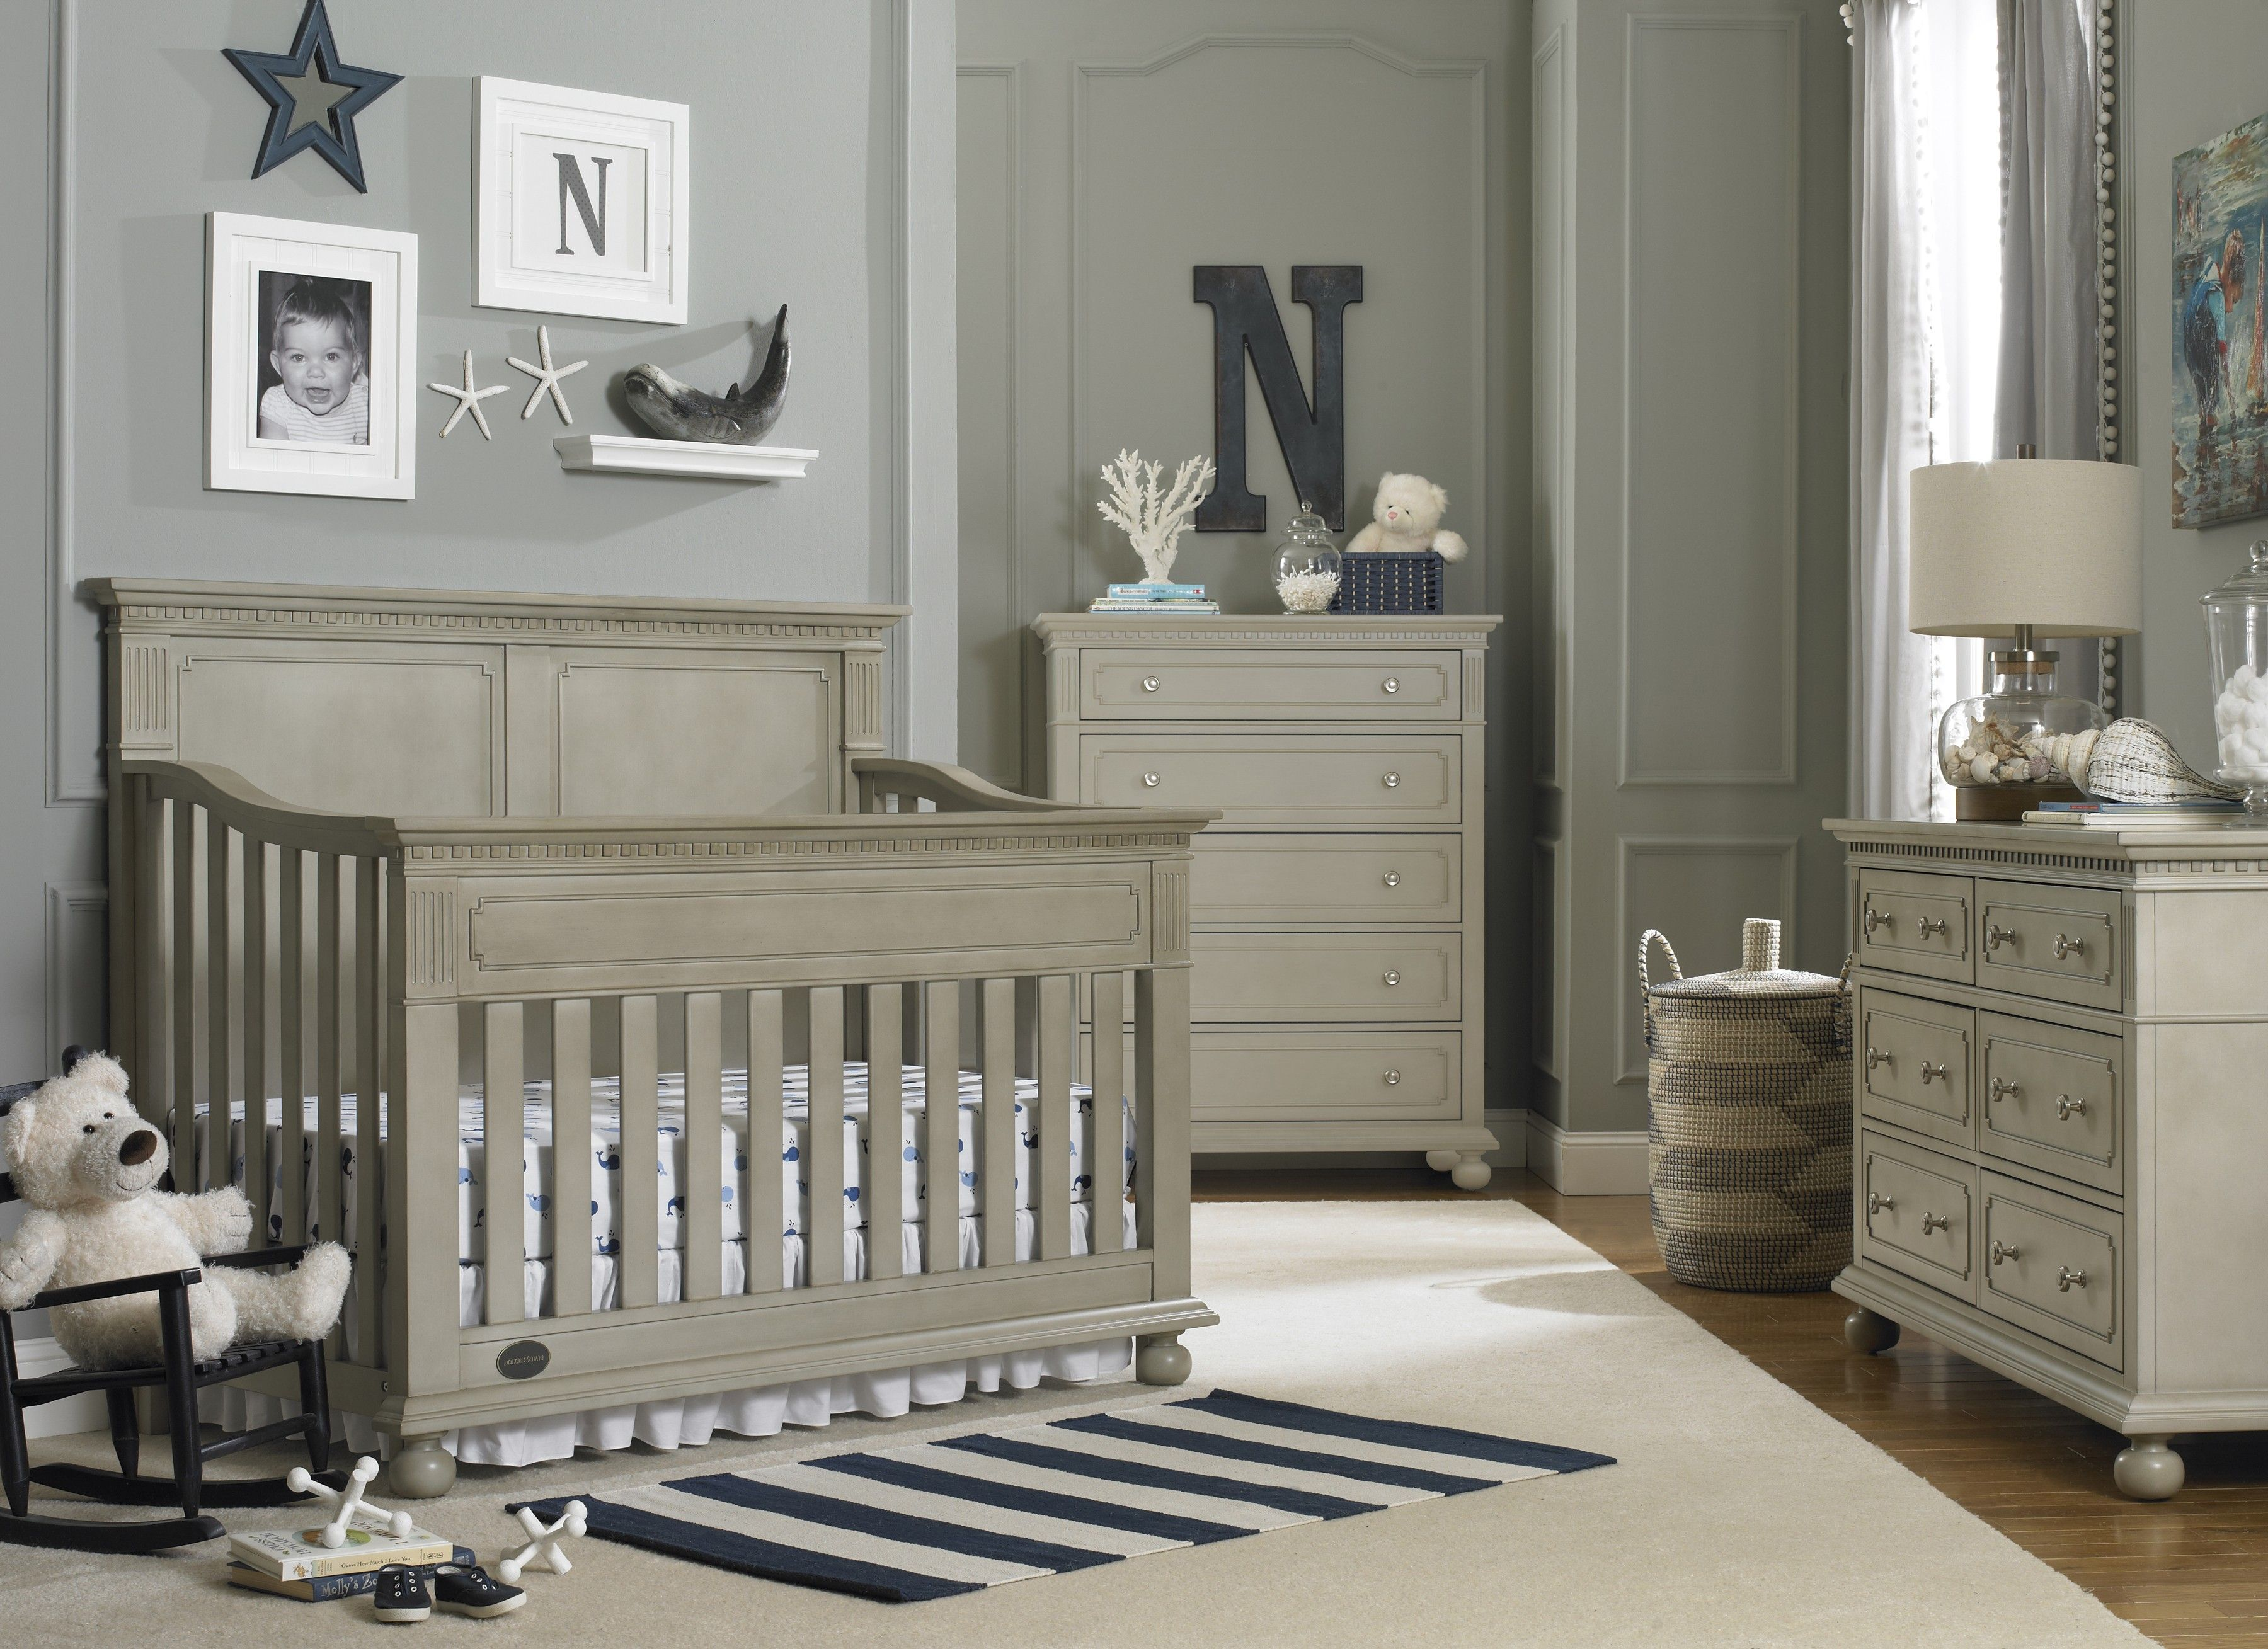 Grey and white baby room ideas - Amazing Vintage Baby Boy Nursery Ideas And Remodelling Gallery Design Ideas